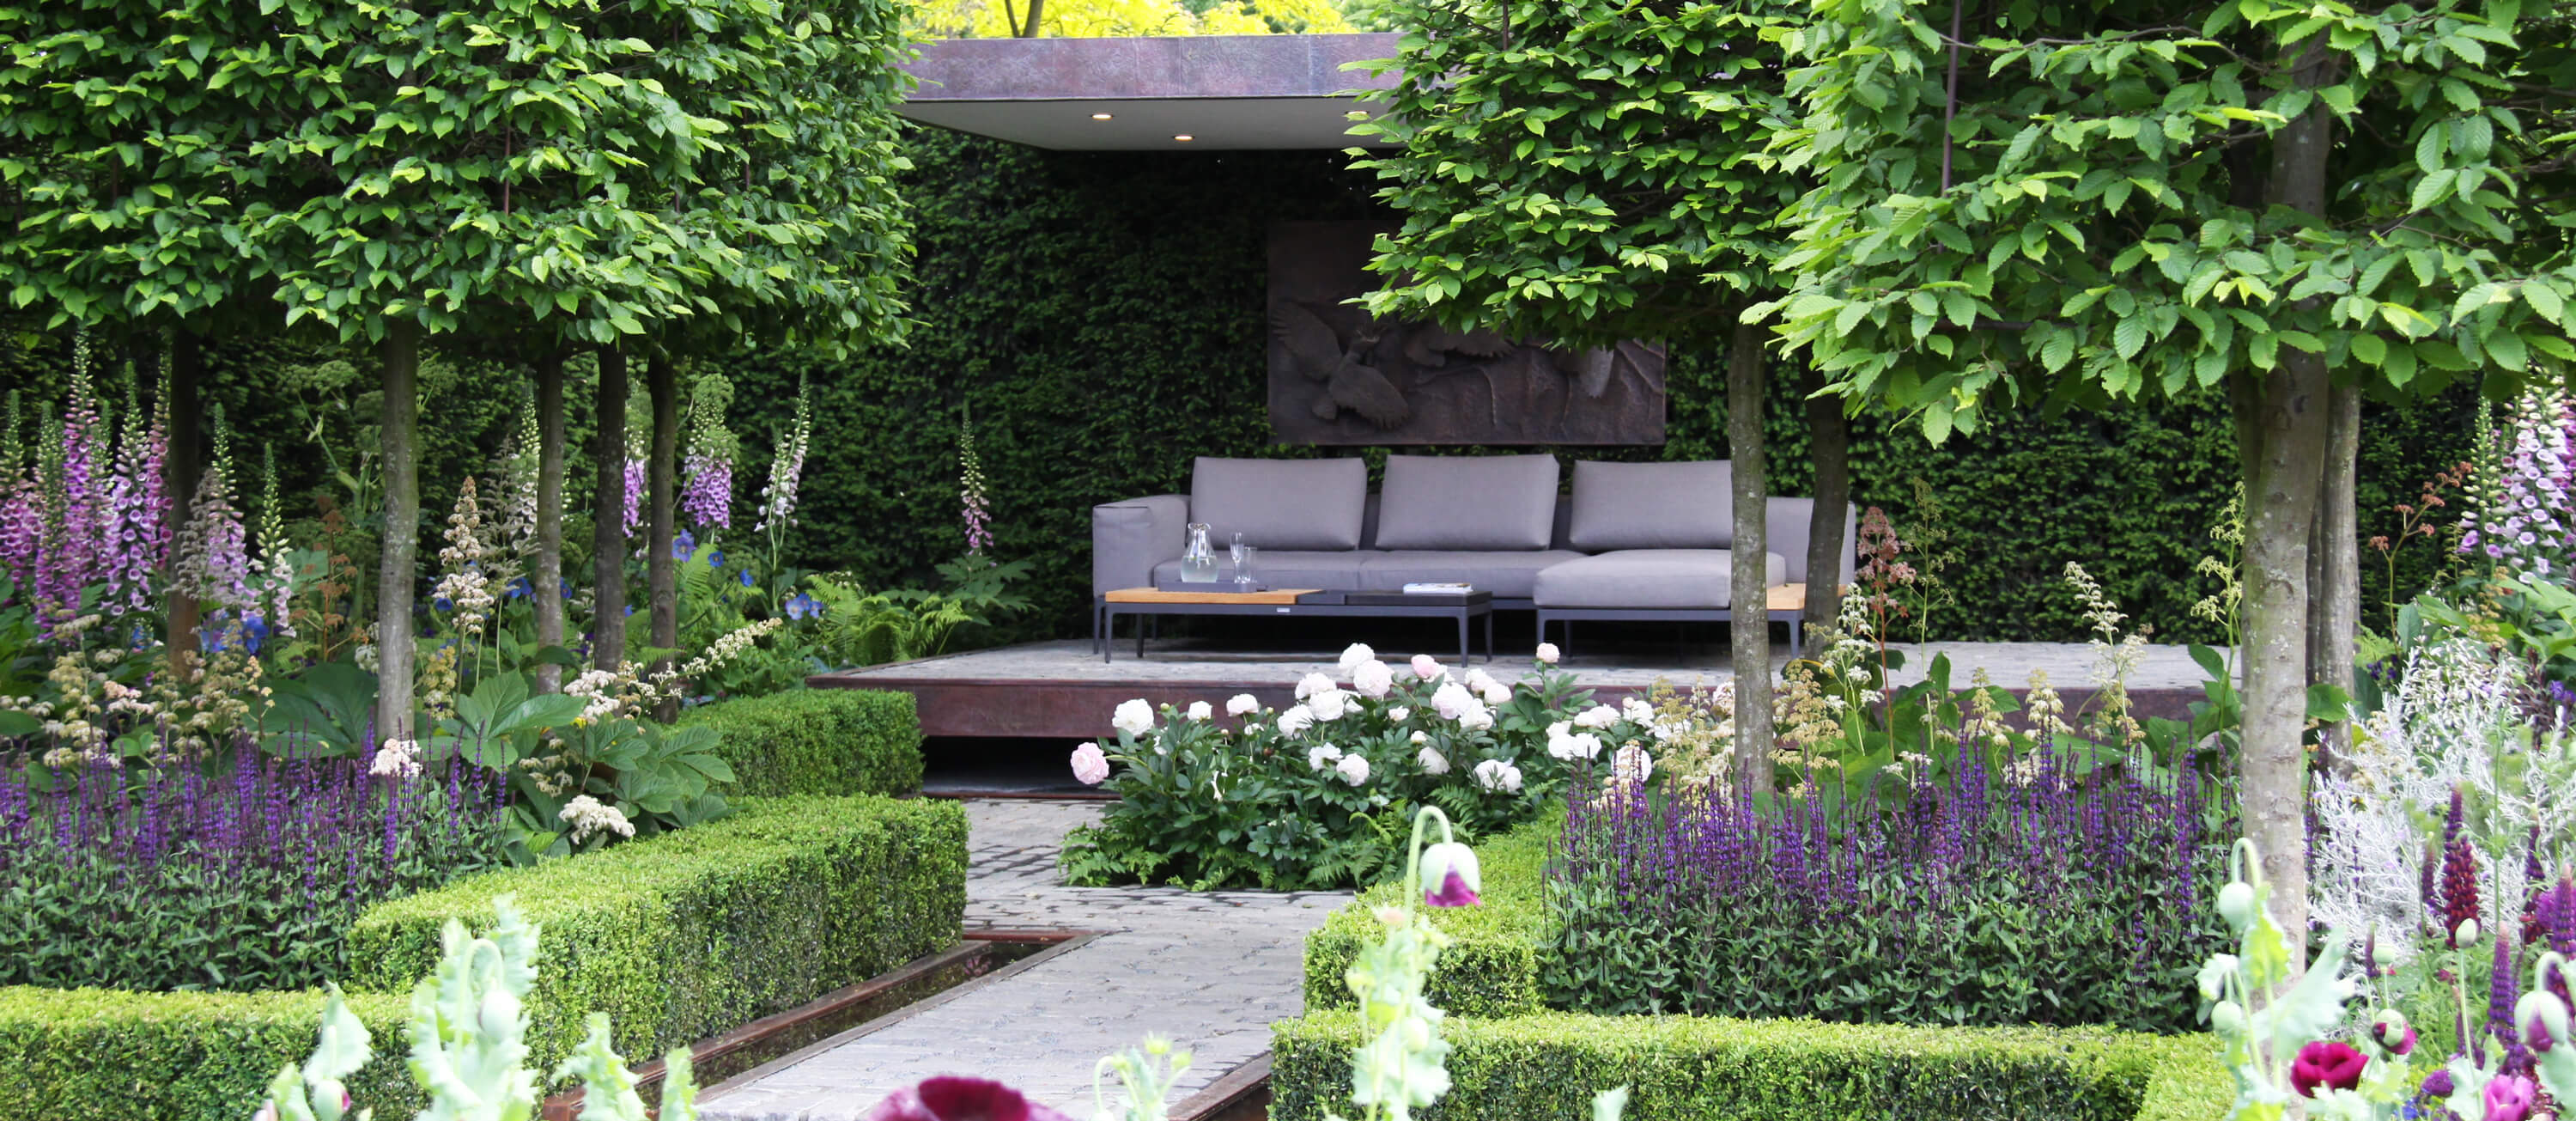 garten inspiration an der chelsea flower show london